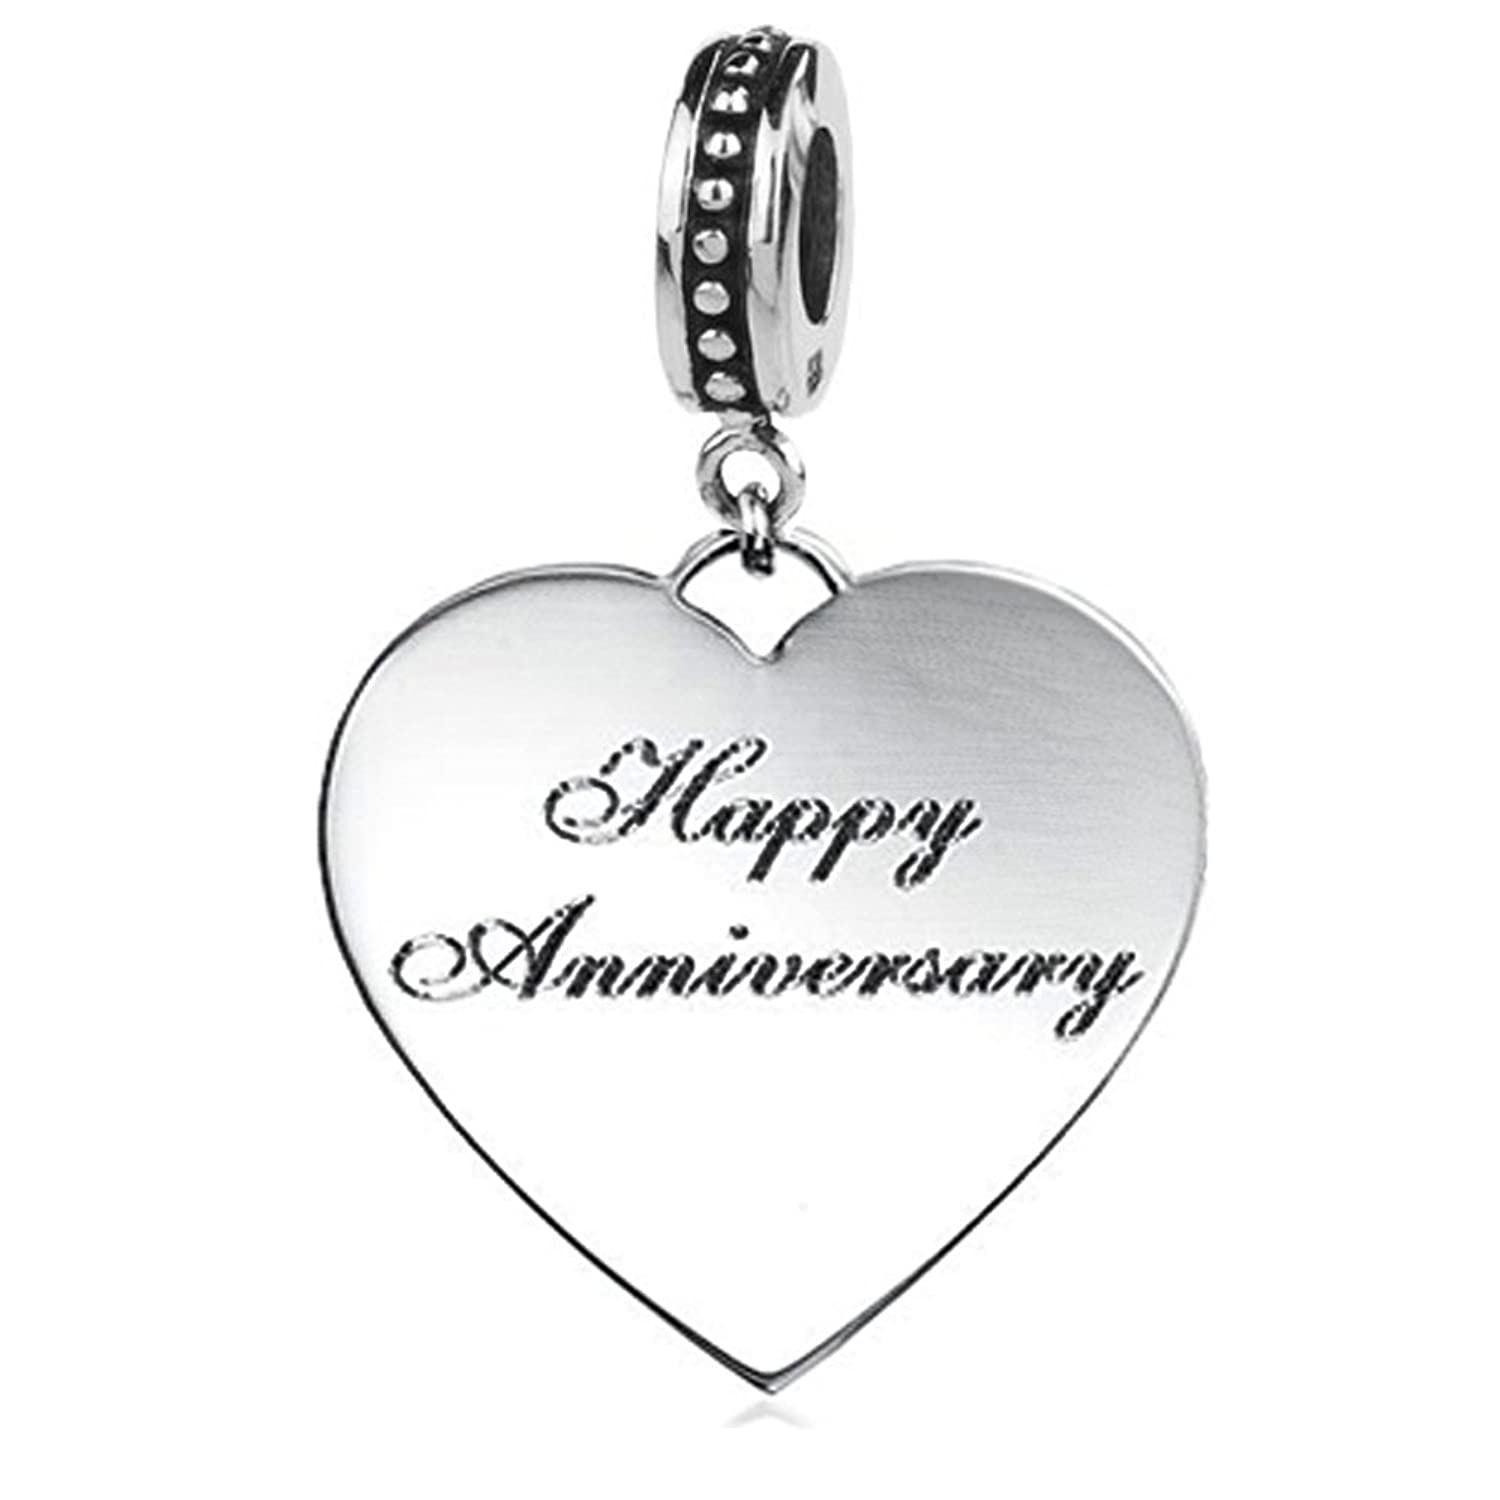 products happy from rgd keepsake necklace dawn pendant anniversary gifts personalised and